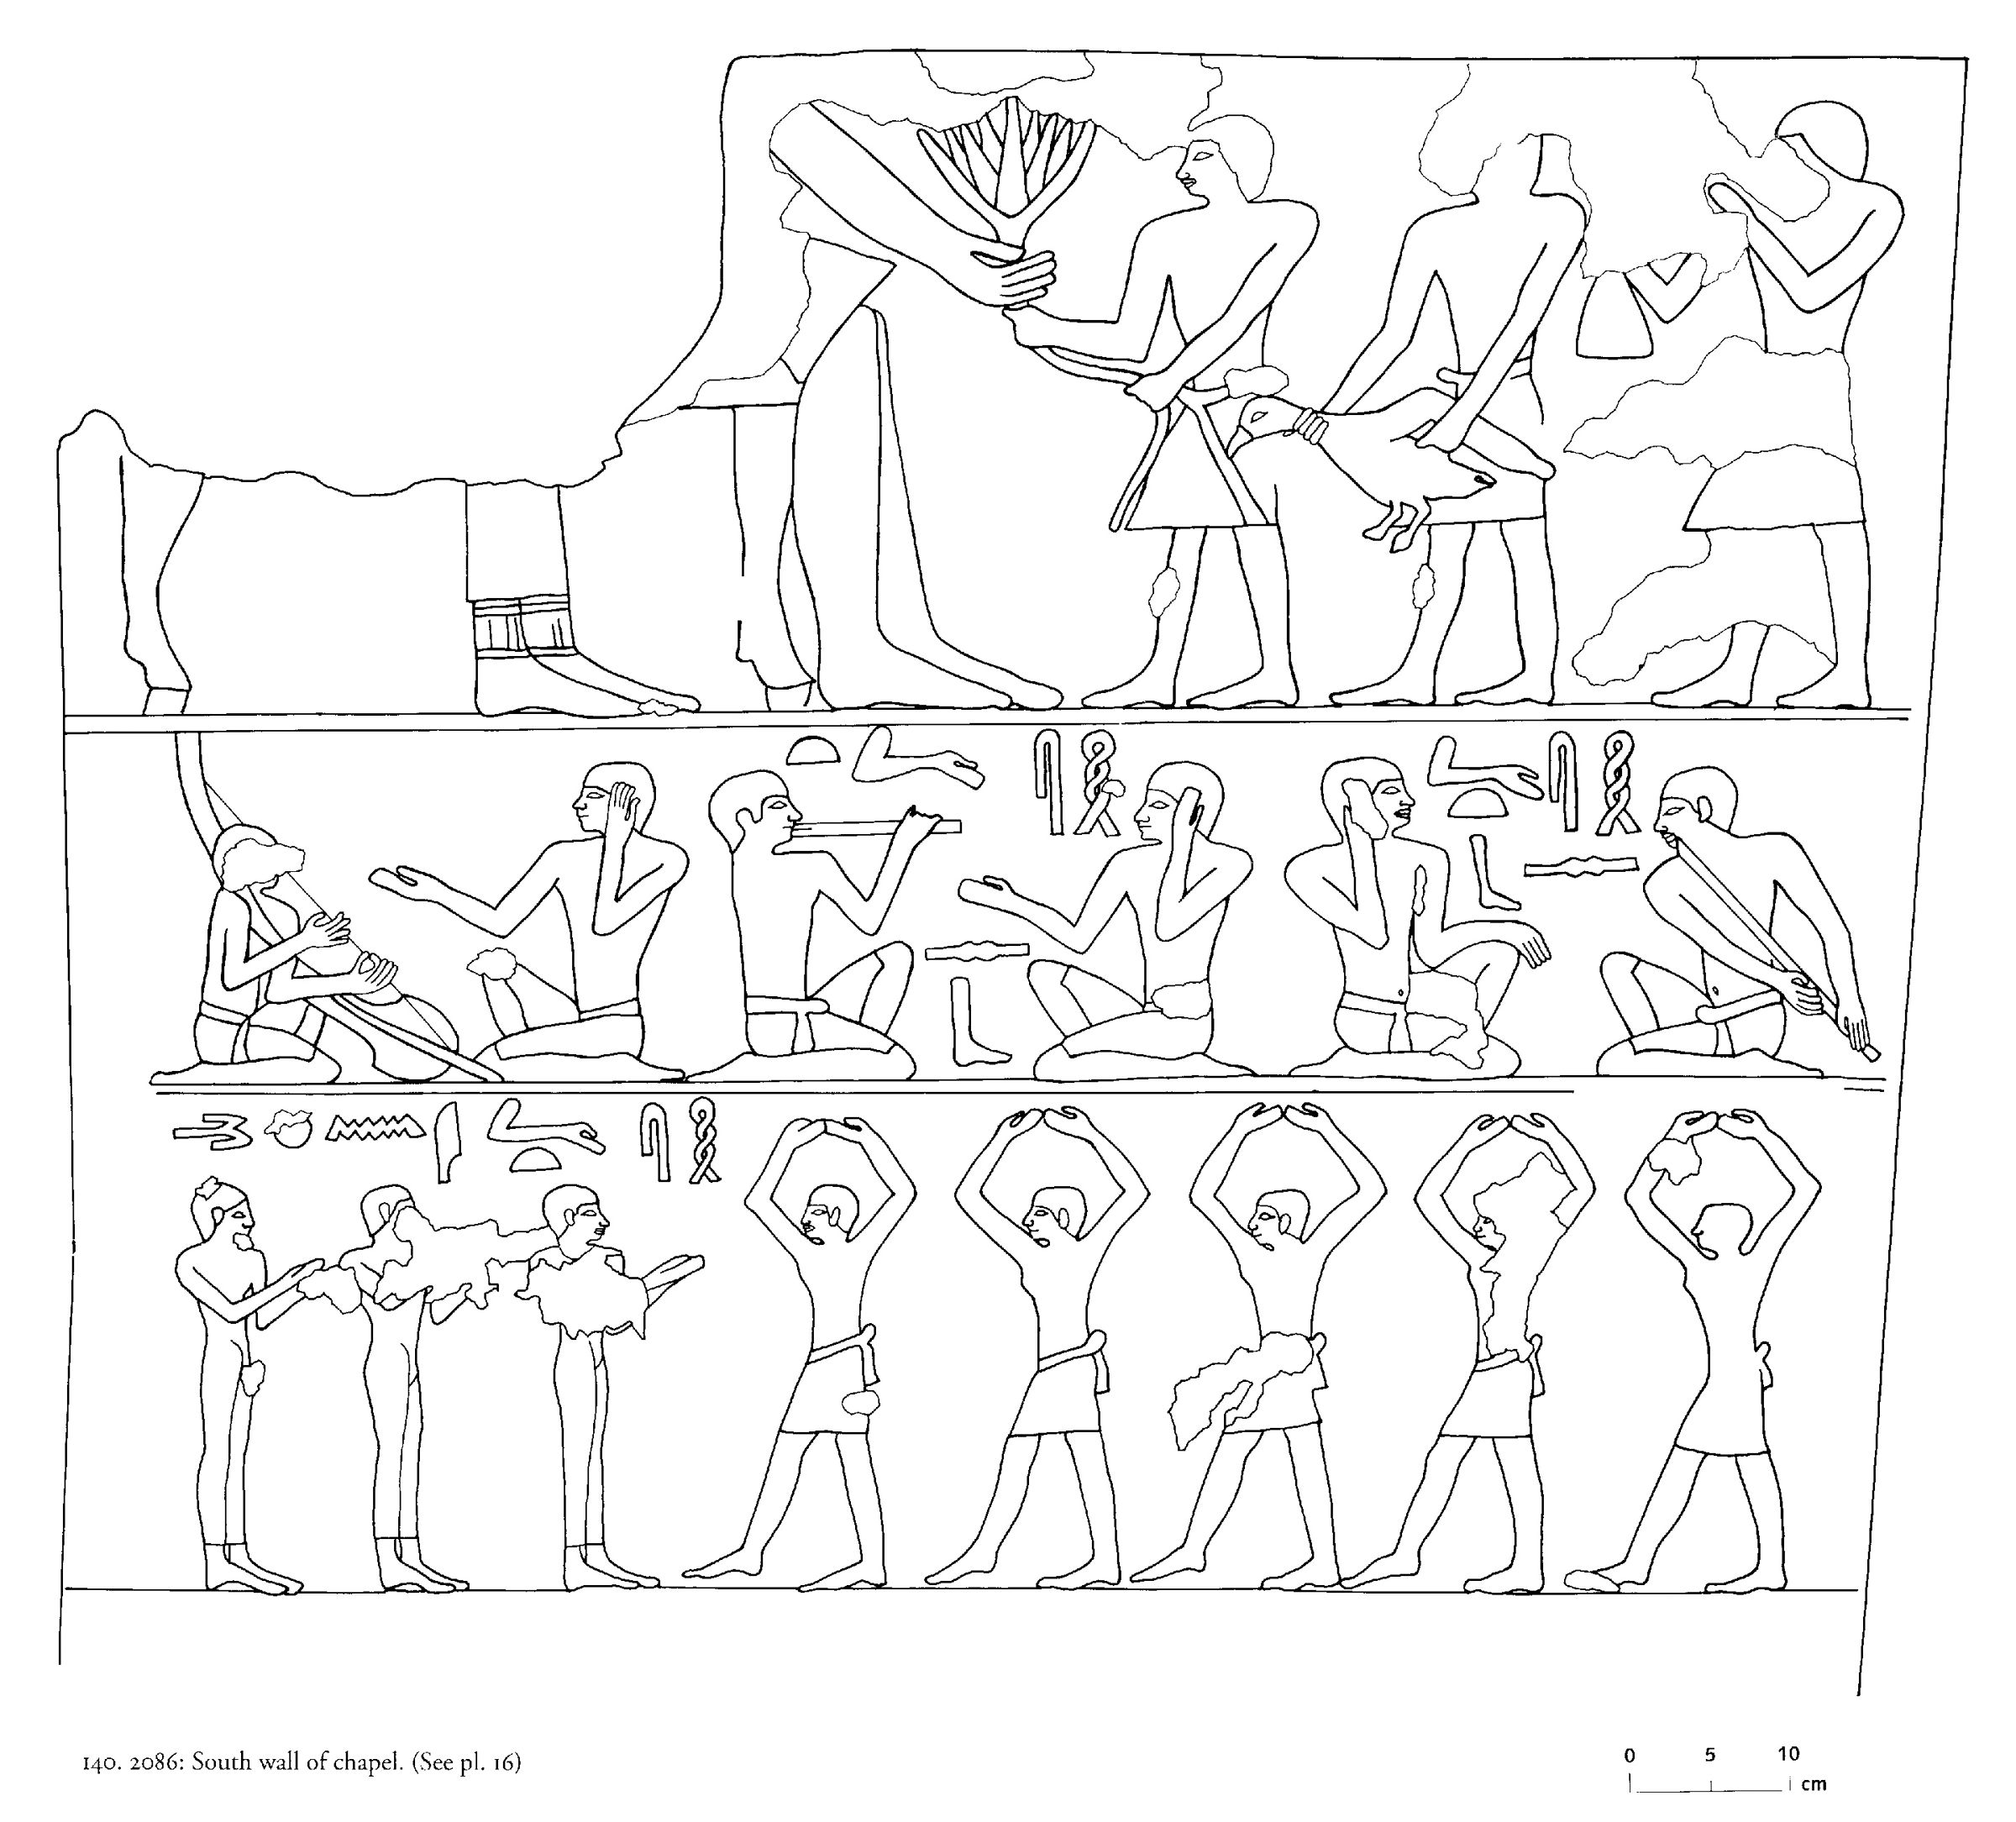 Drawings: G 2086: relief from S wall